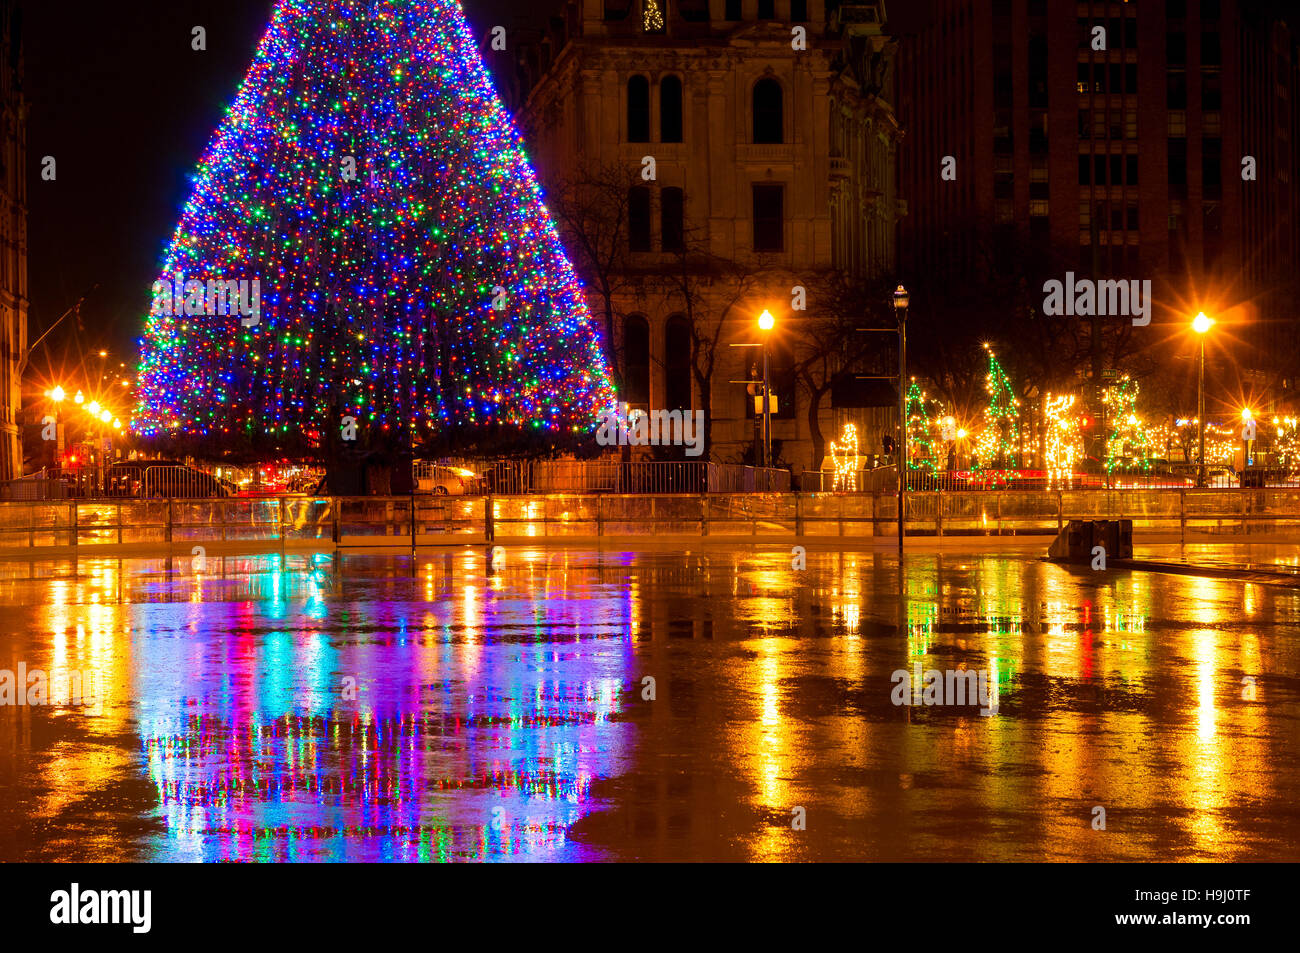 Stock Photo - The big lighted Christmas tree in Syracuse NY reflected in the wet skating rink on Clinton Square & The big lighted Christmas tree in Syracuse NY reflected in the wet ... azcodes.com